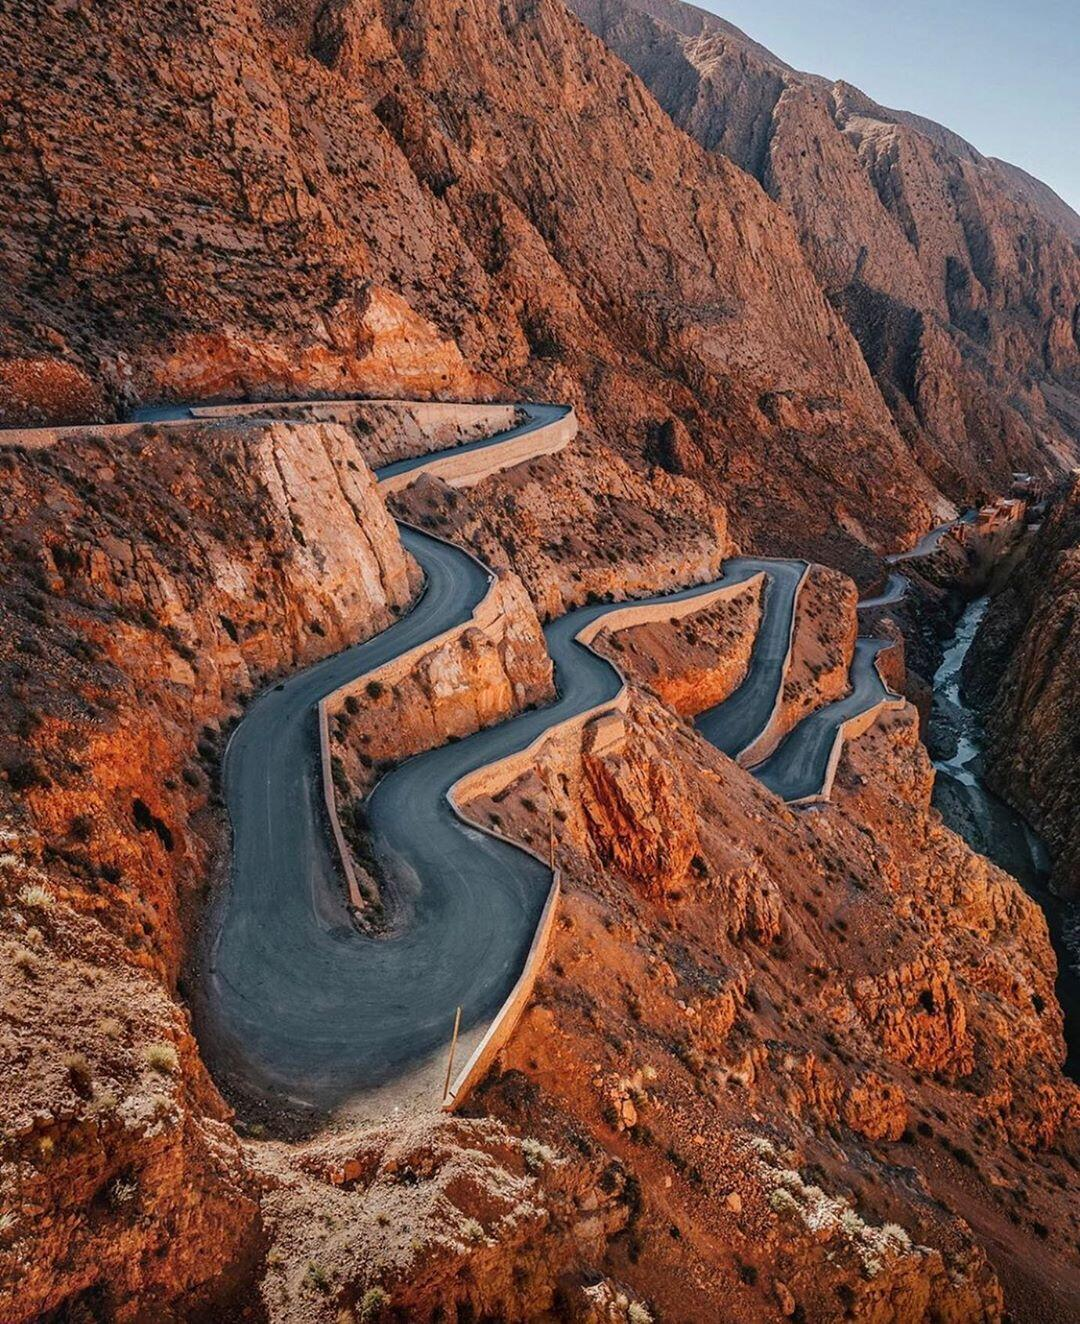 The curves of tissdine, and attraction we will visit with our 9 days itinerary in Morocco